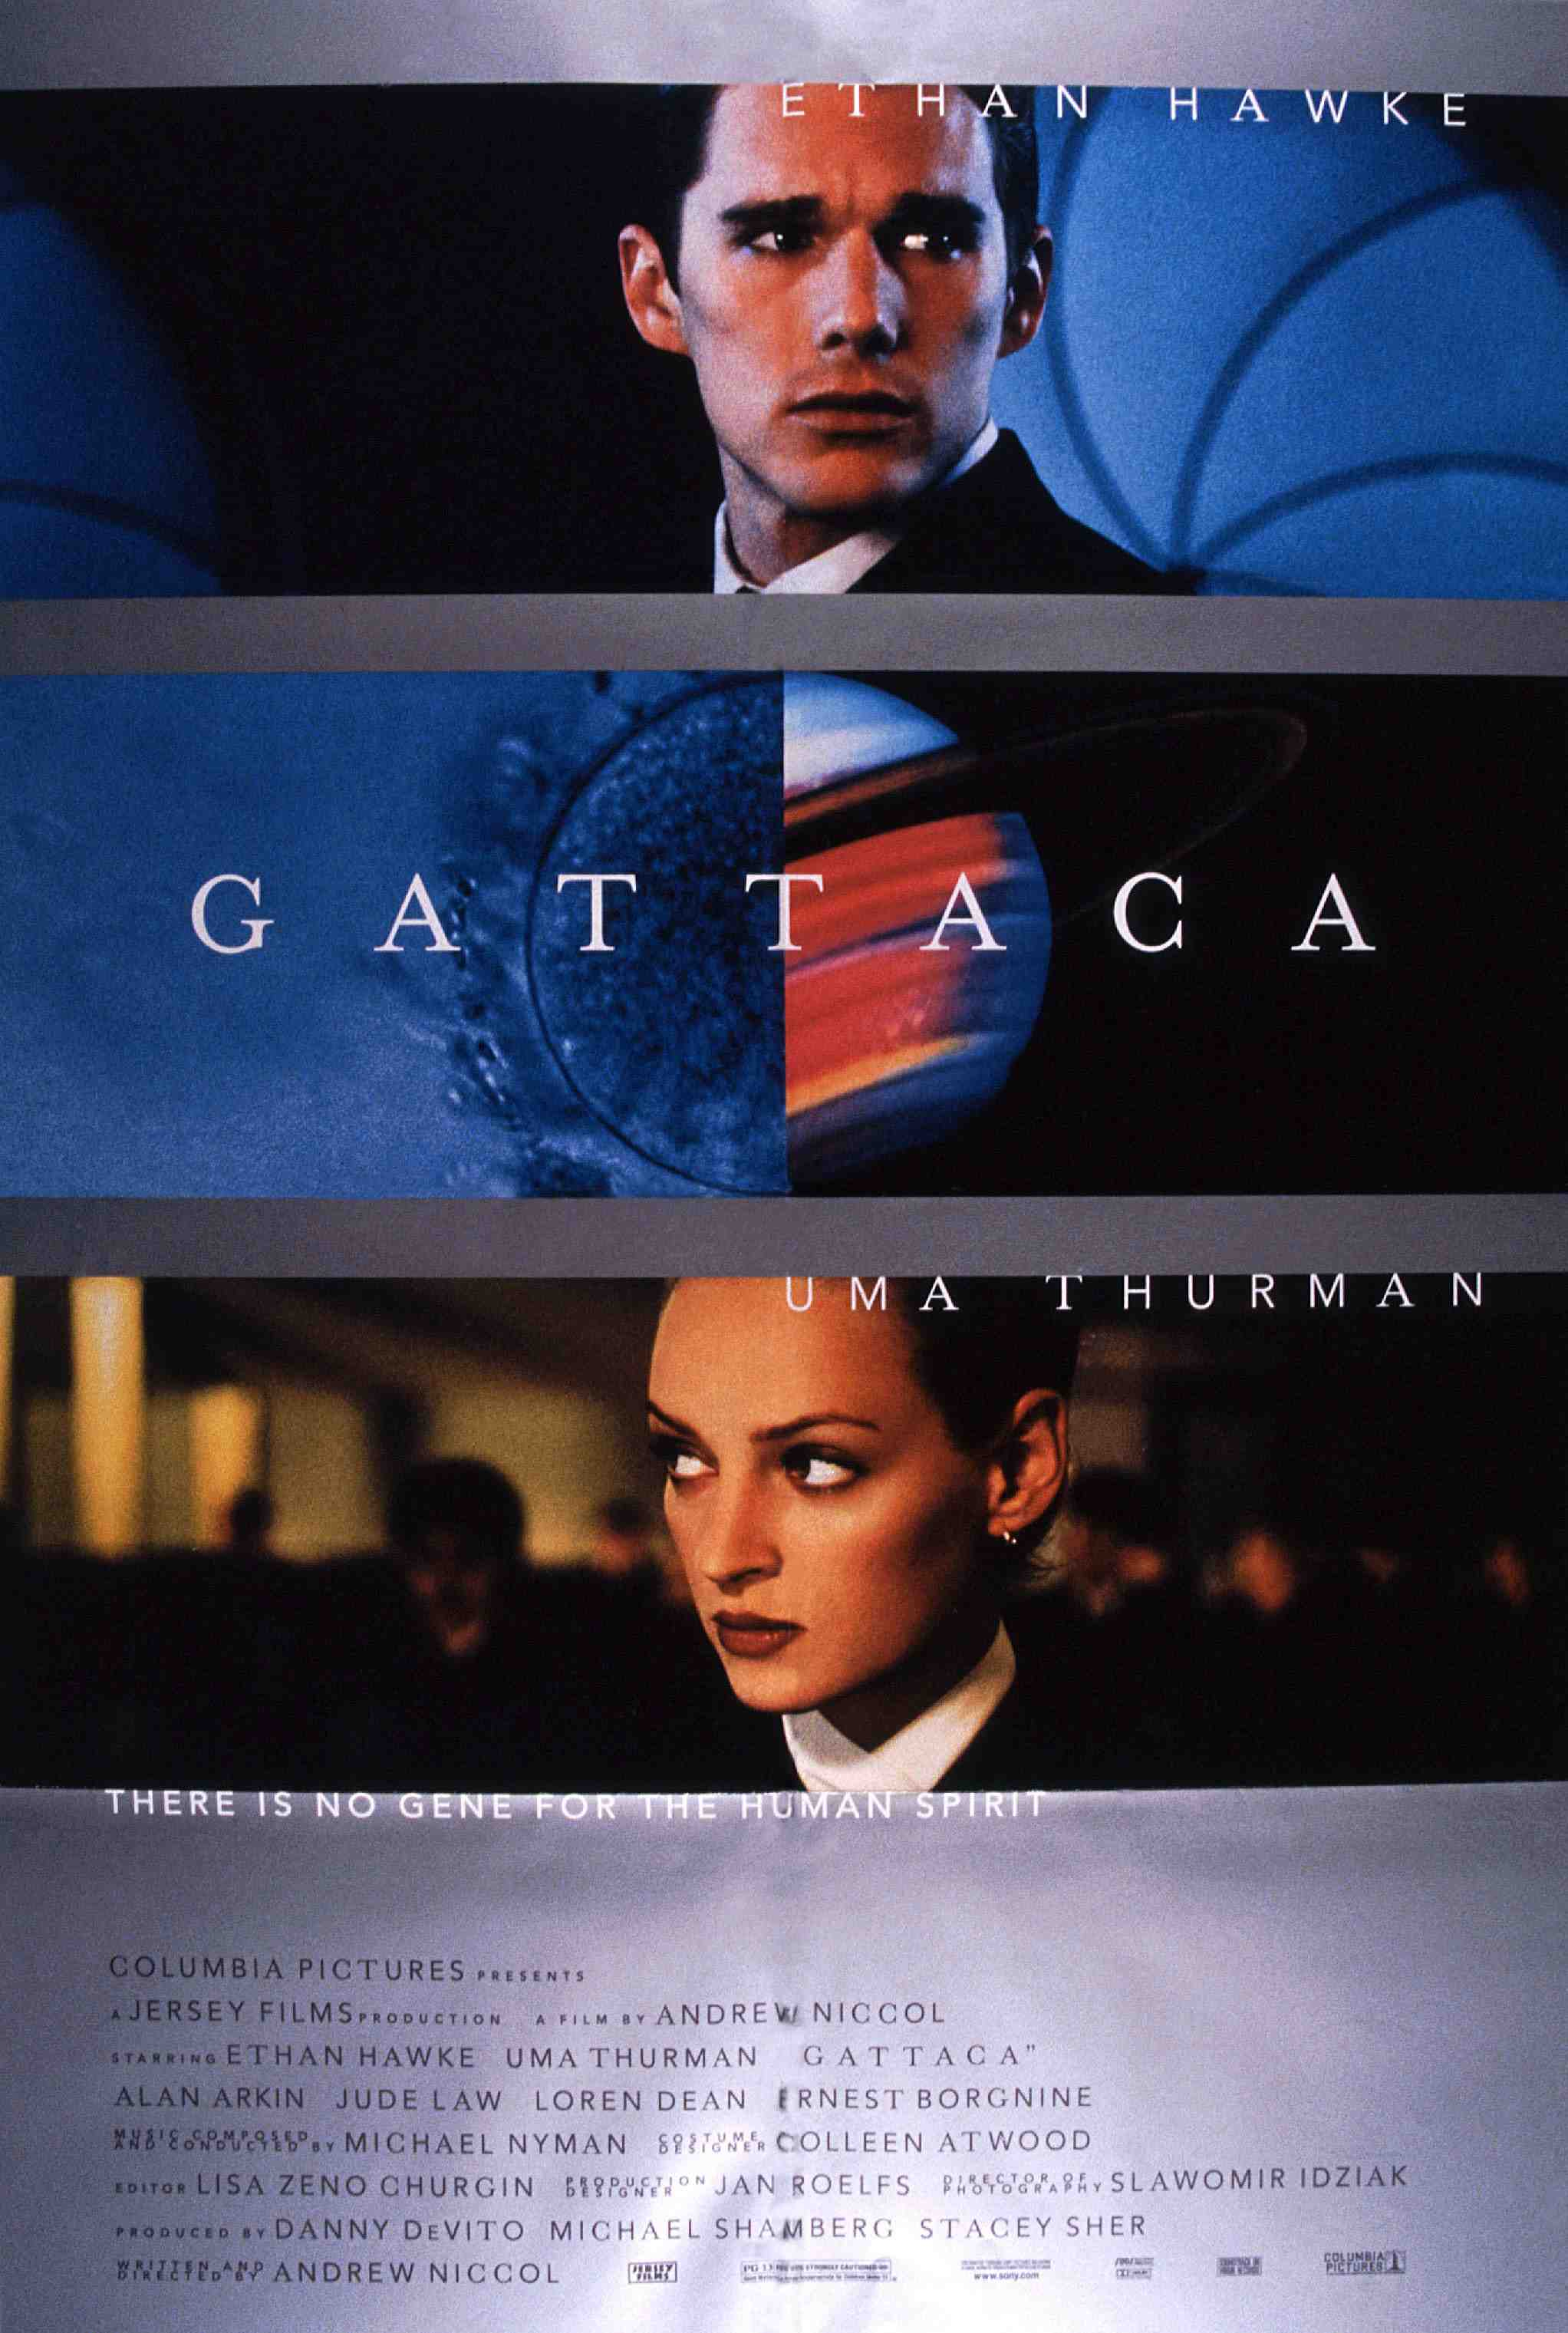 film techniques used in gattaca Innovations in filming or lighting or camera techniques the film makes great use of sound effects to make the gattaca institute appear cold and dispassionate gattaca literary elements gradesaver, 16 august 2017 web cite this page study guide navigation about gattaca.